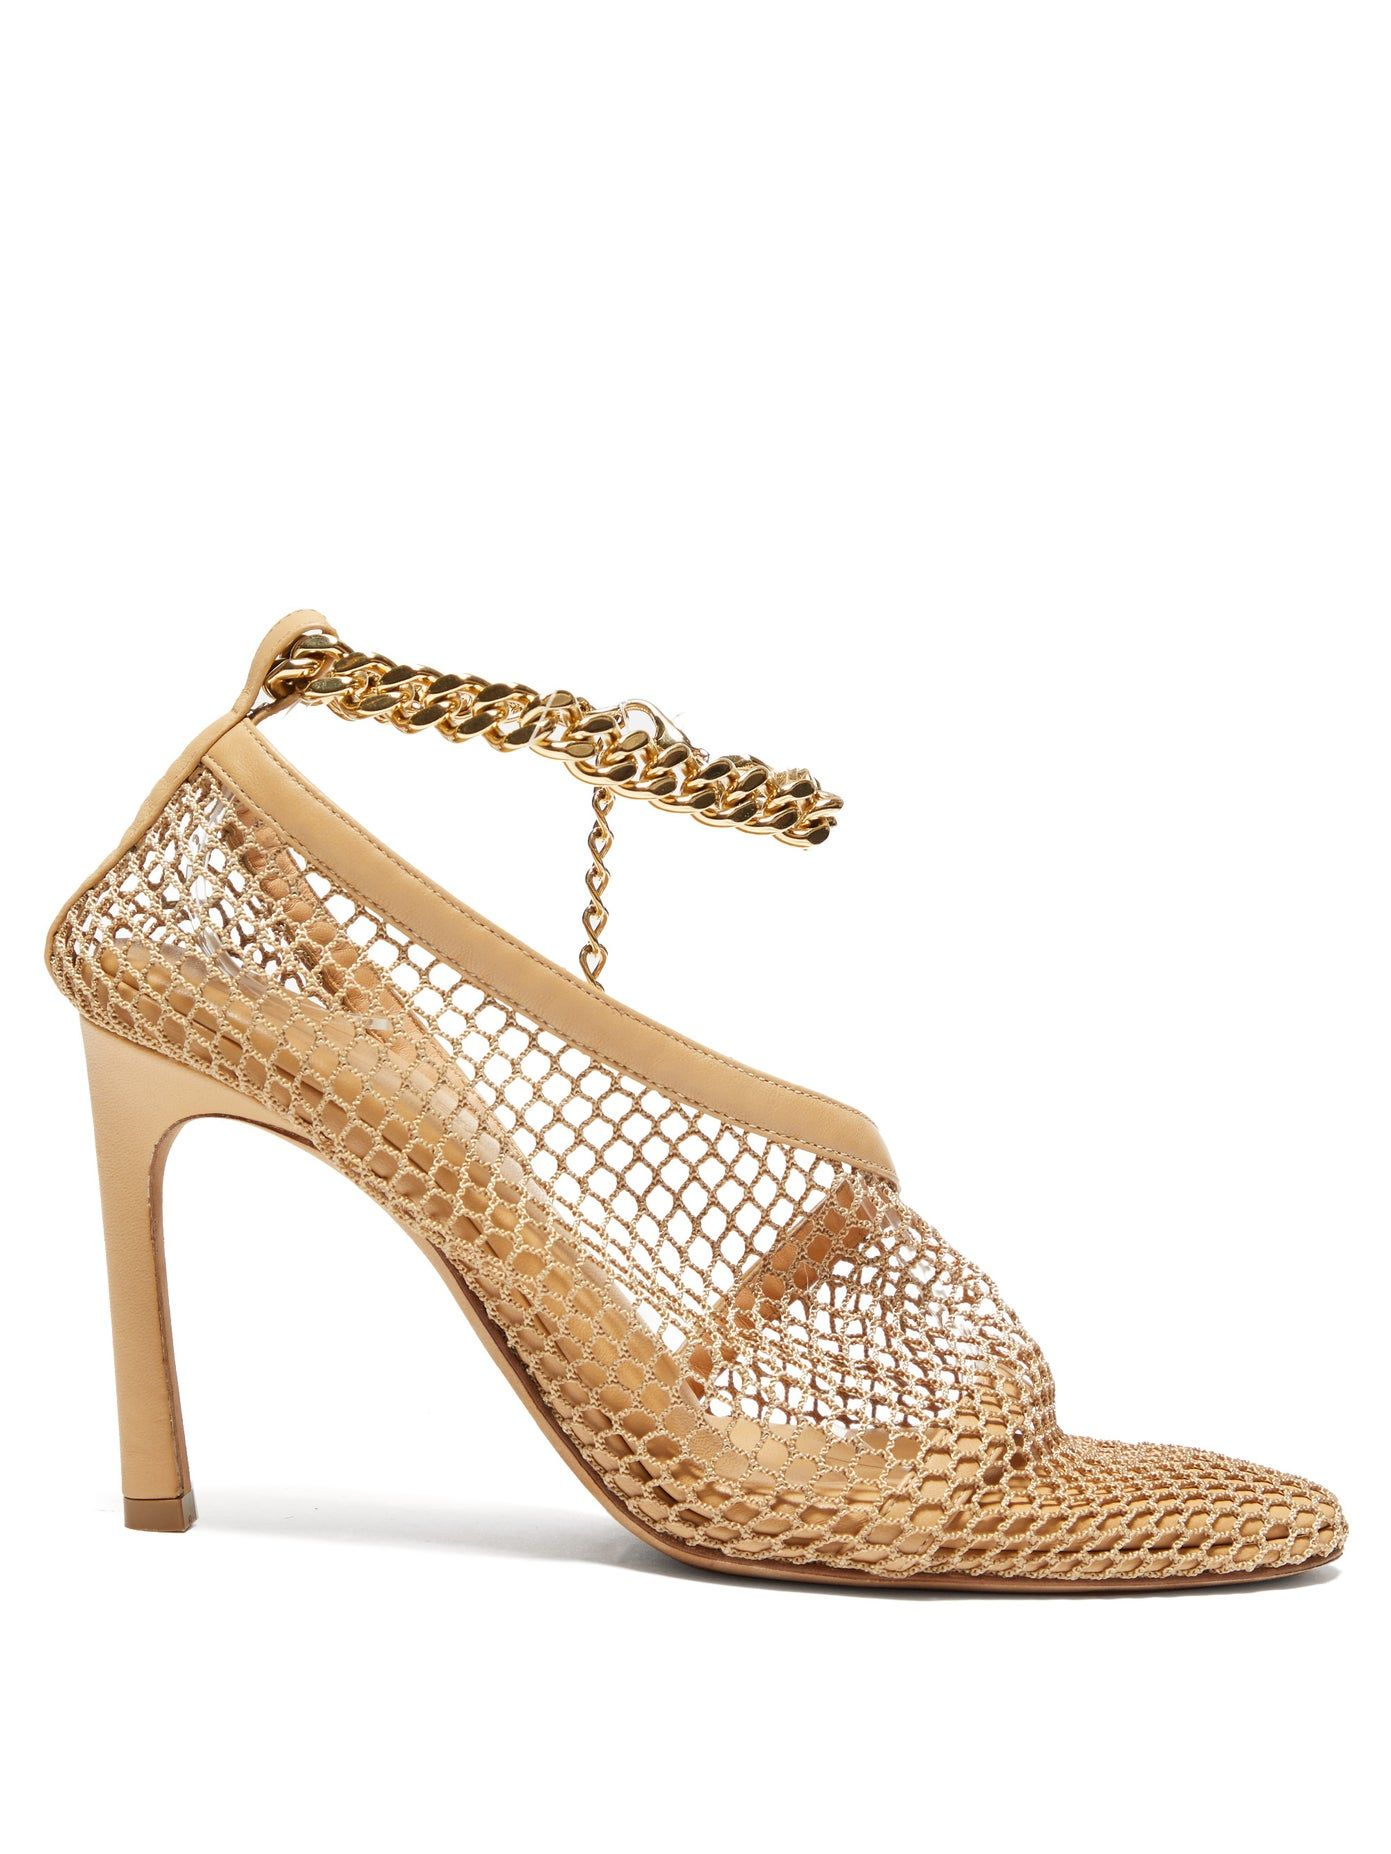 Bottega-Veneta-Anklet-embellished-crochet-mesh-pumps